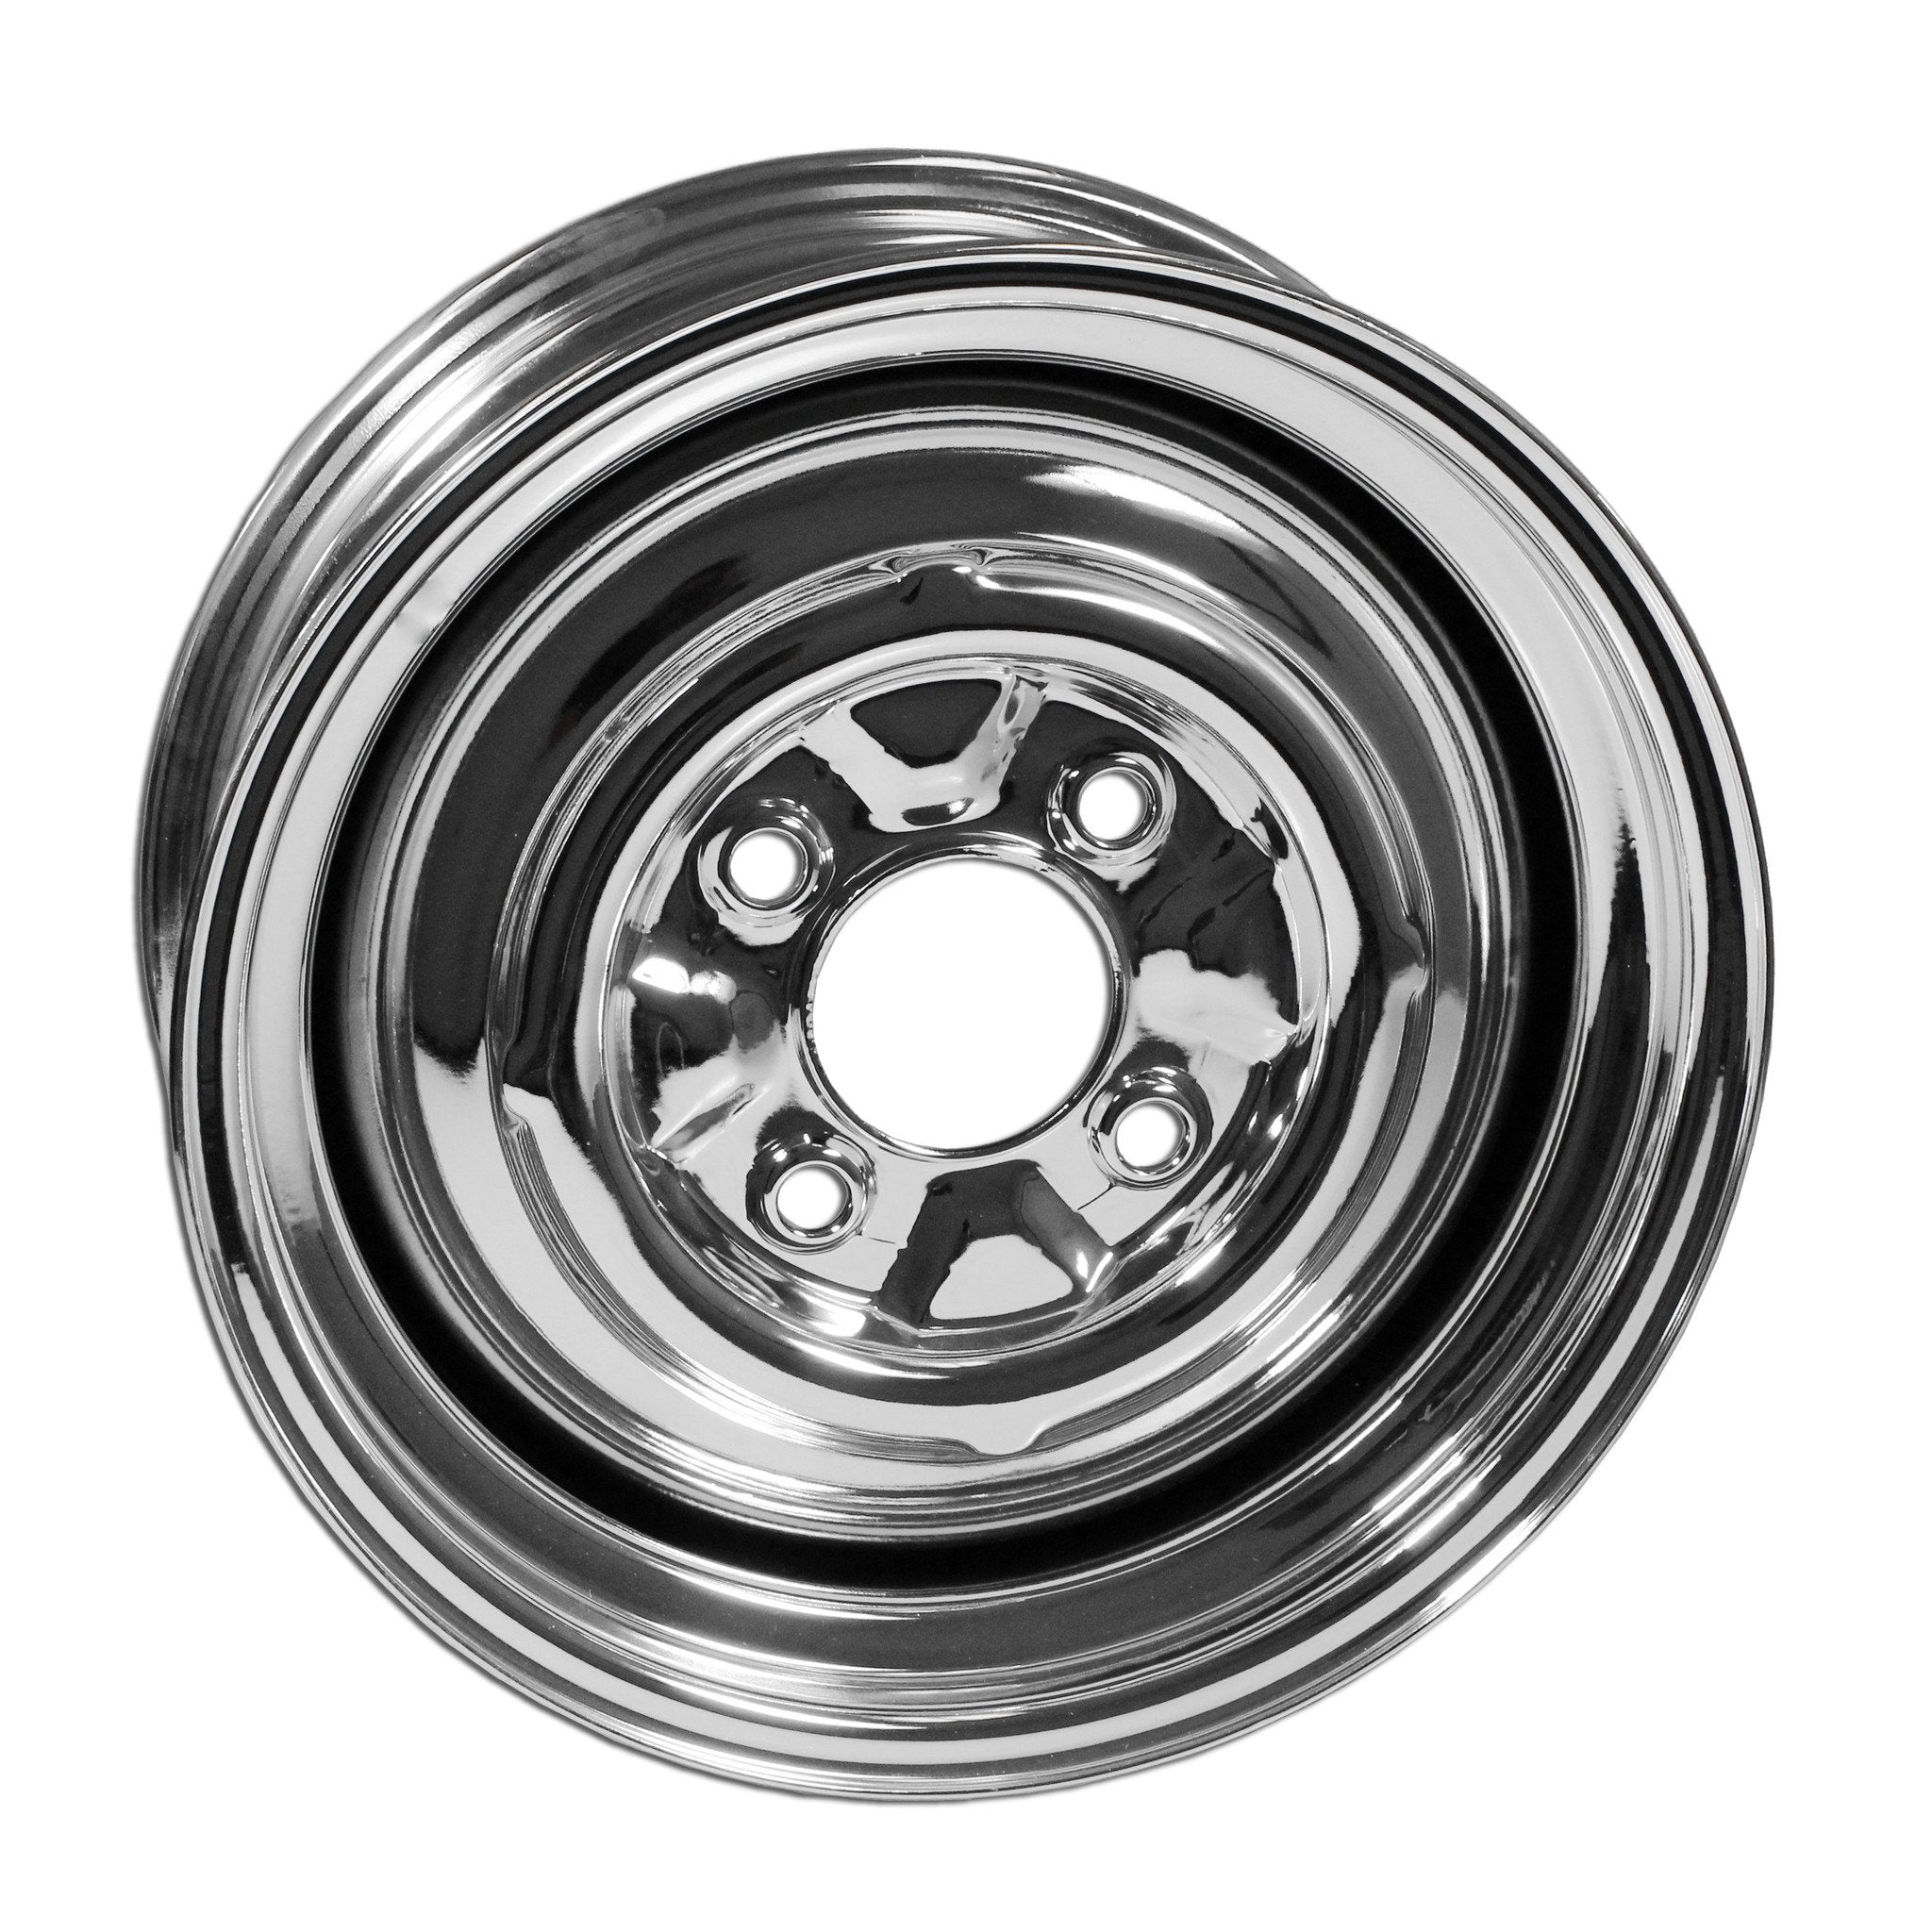 4 lug chrome Smoothie SC v=